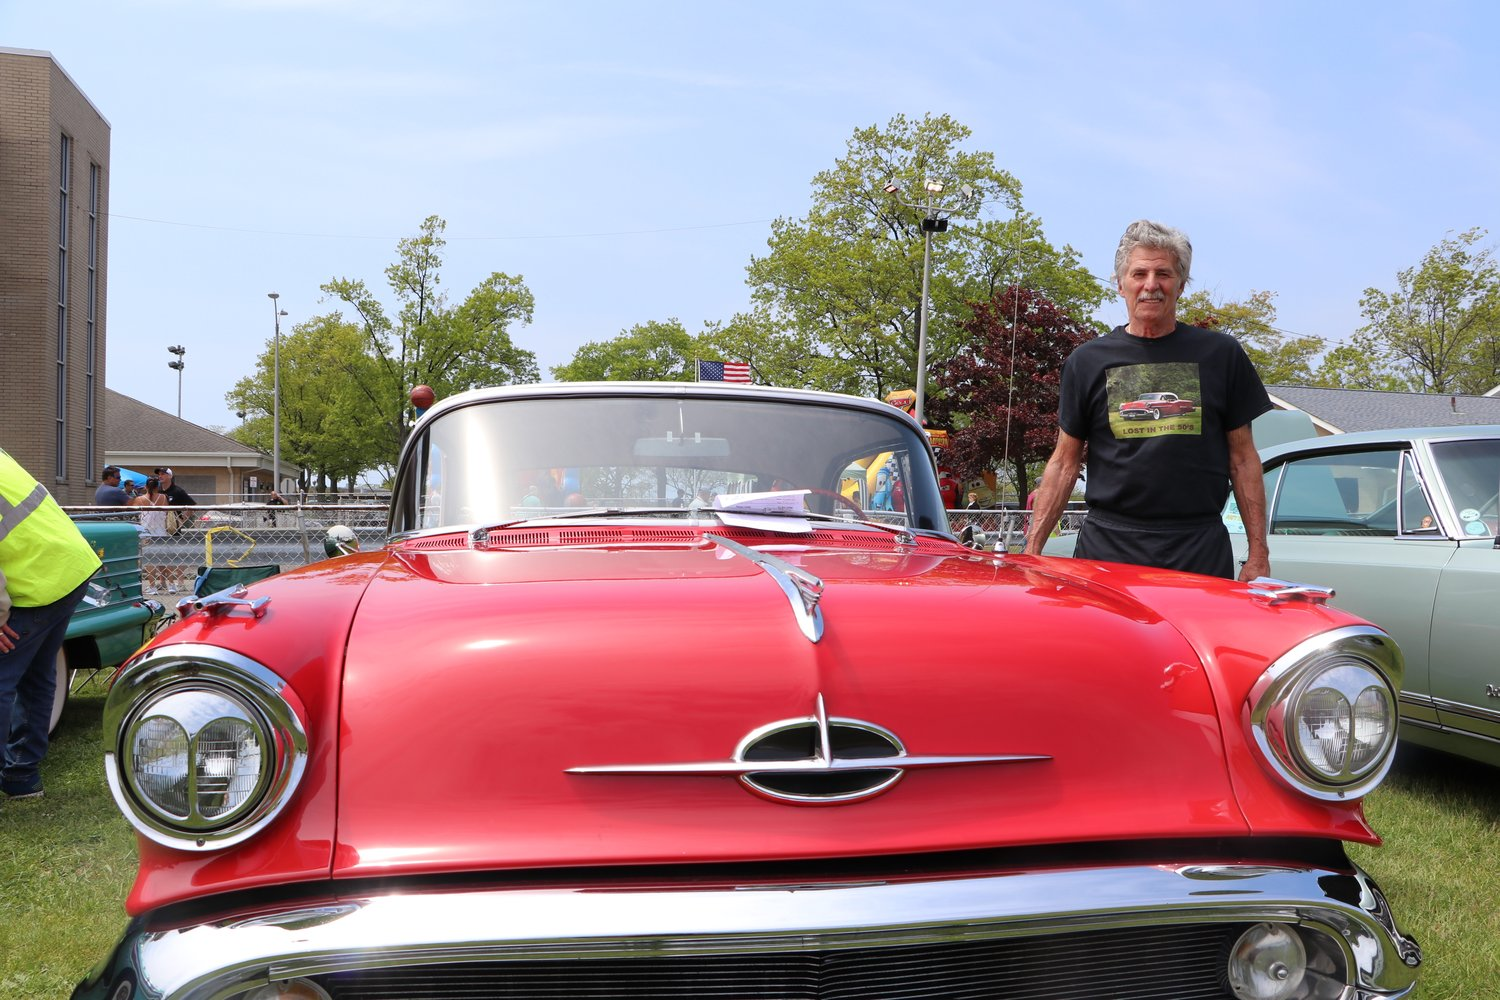 Ronald Holmes with his 1957 Oldsmobile Super 88.